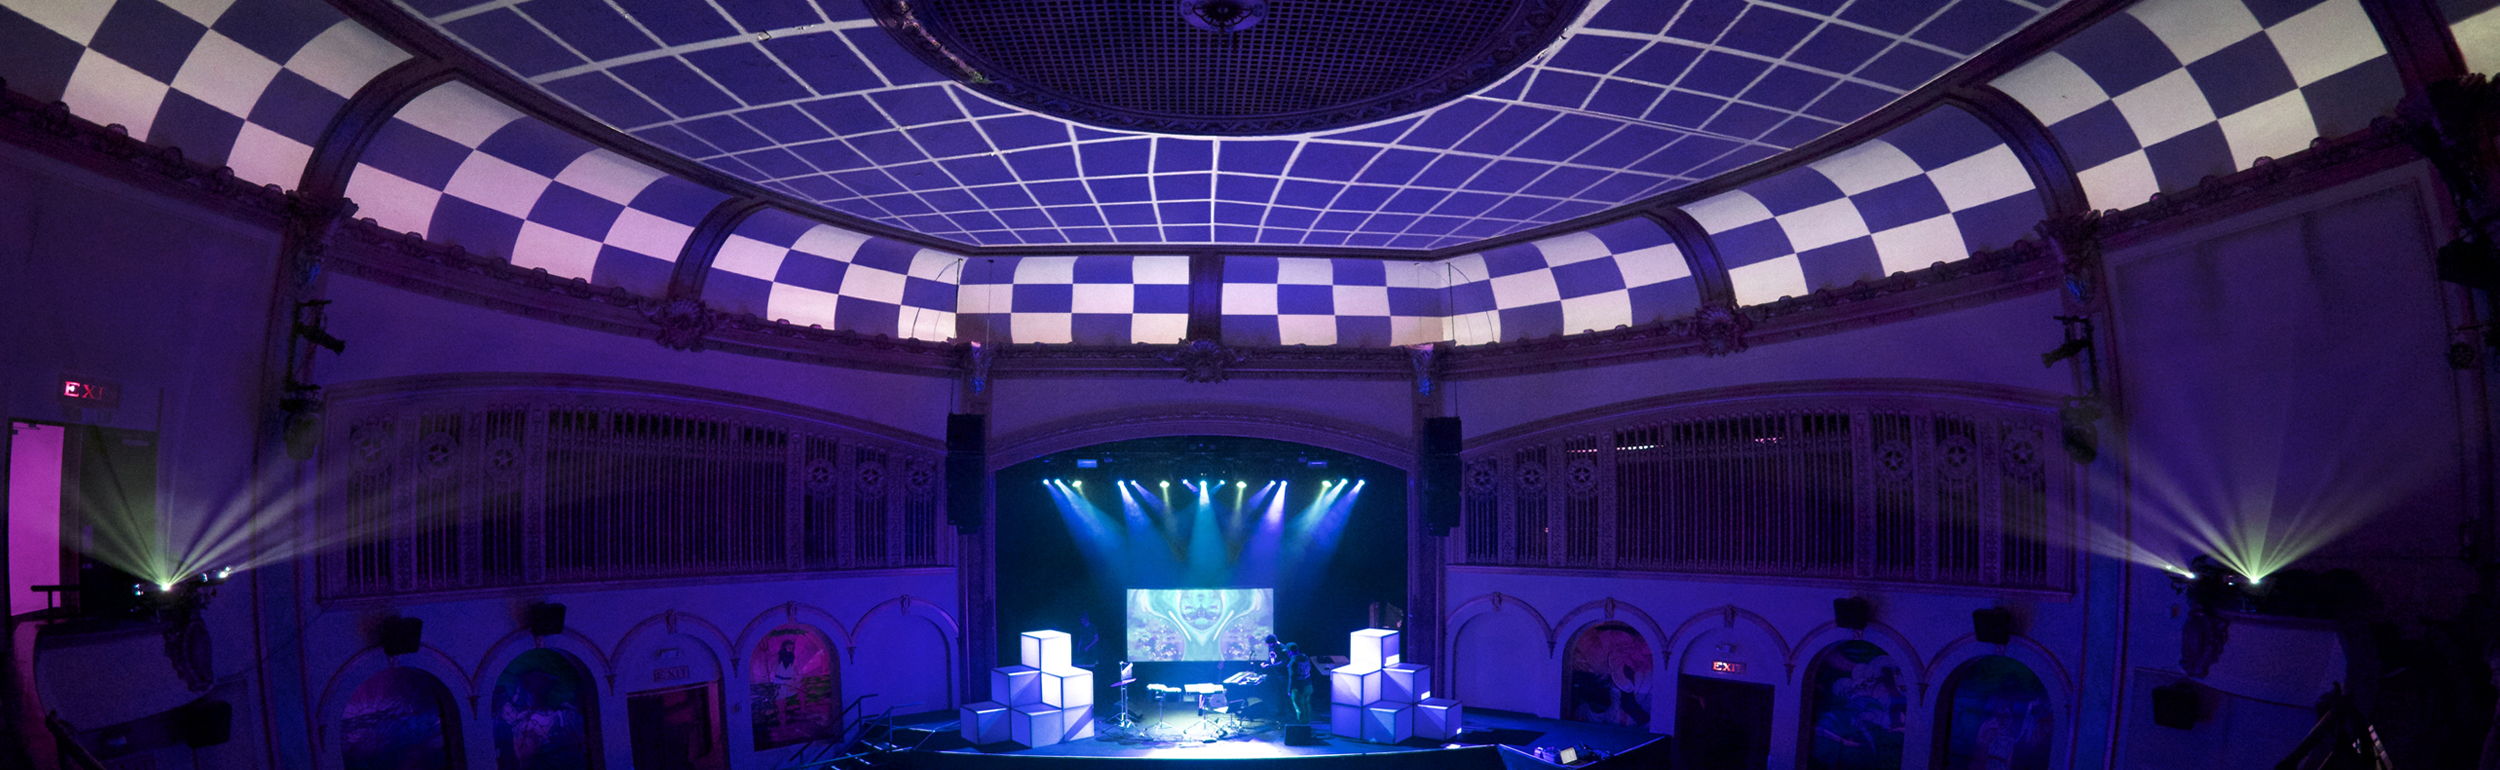 Projection mapping setup inside the neptune theater for the manatee commune show